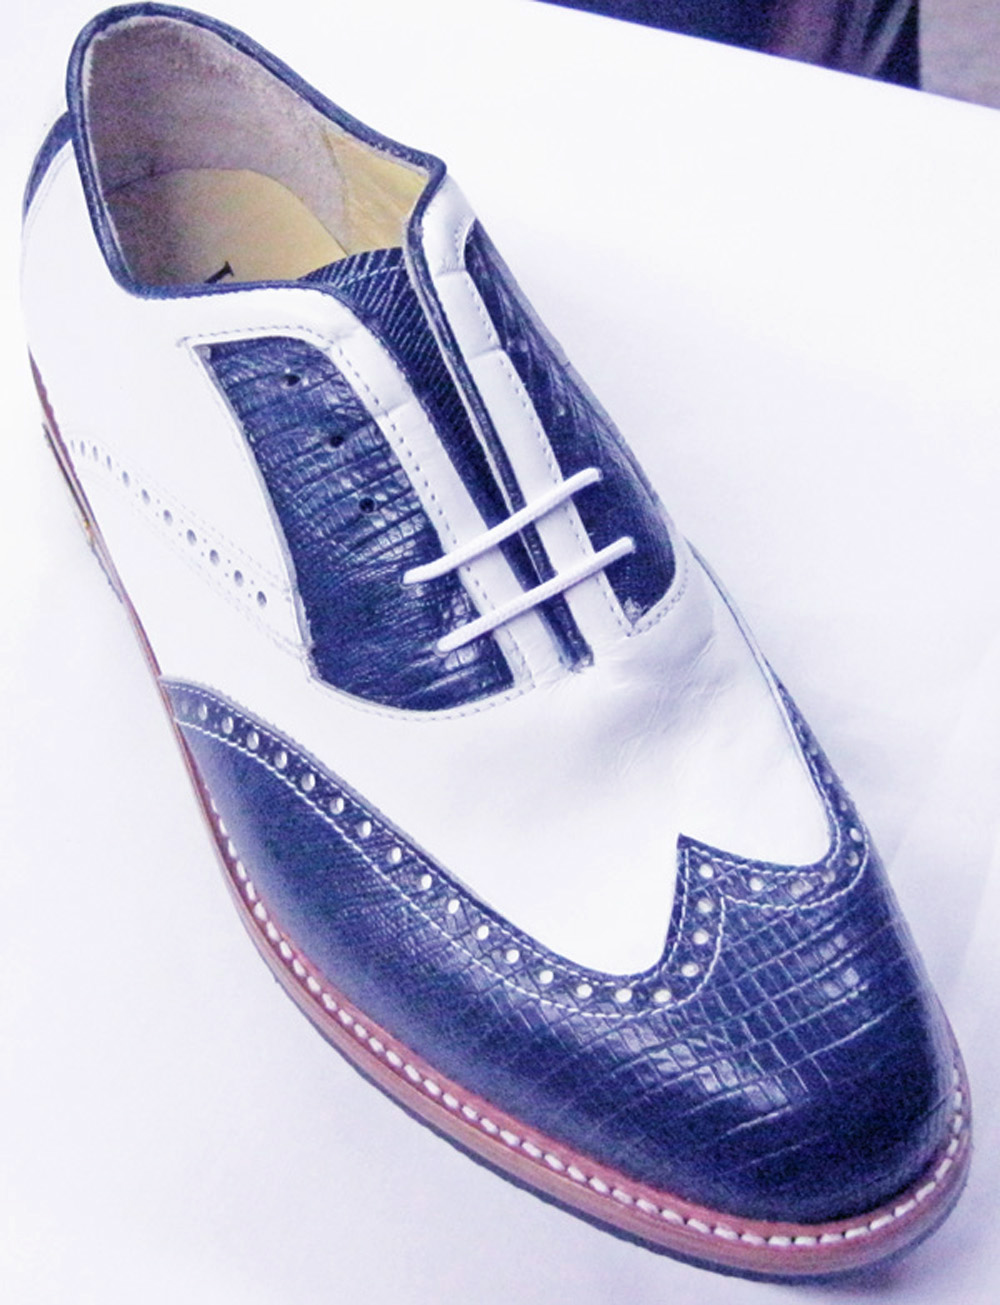 Classic Gold Toe Golf shoes Navy/white wing tip